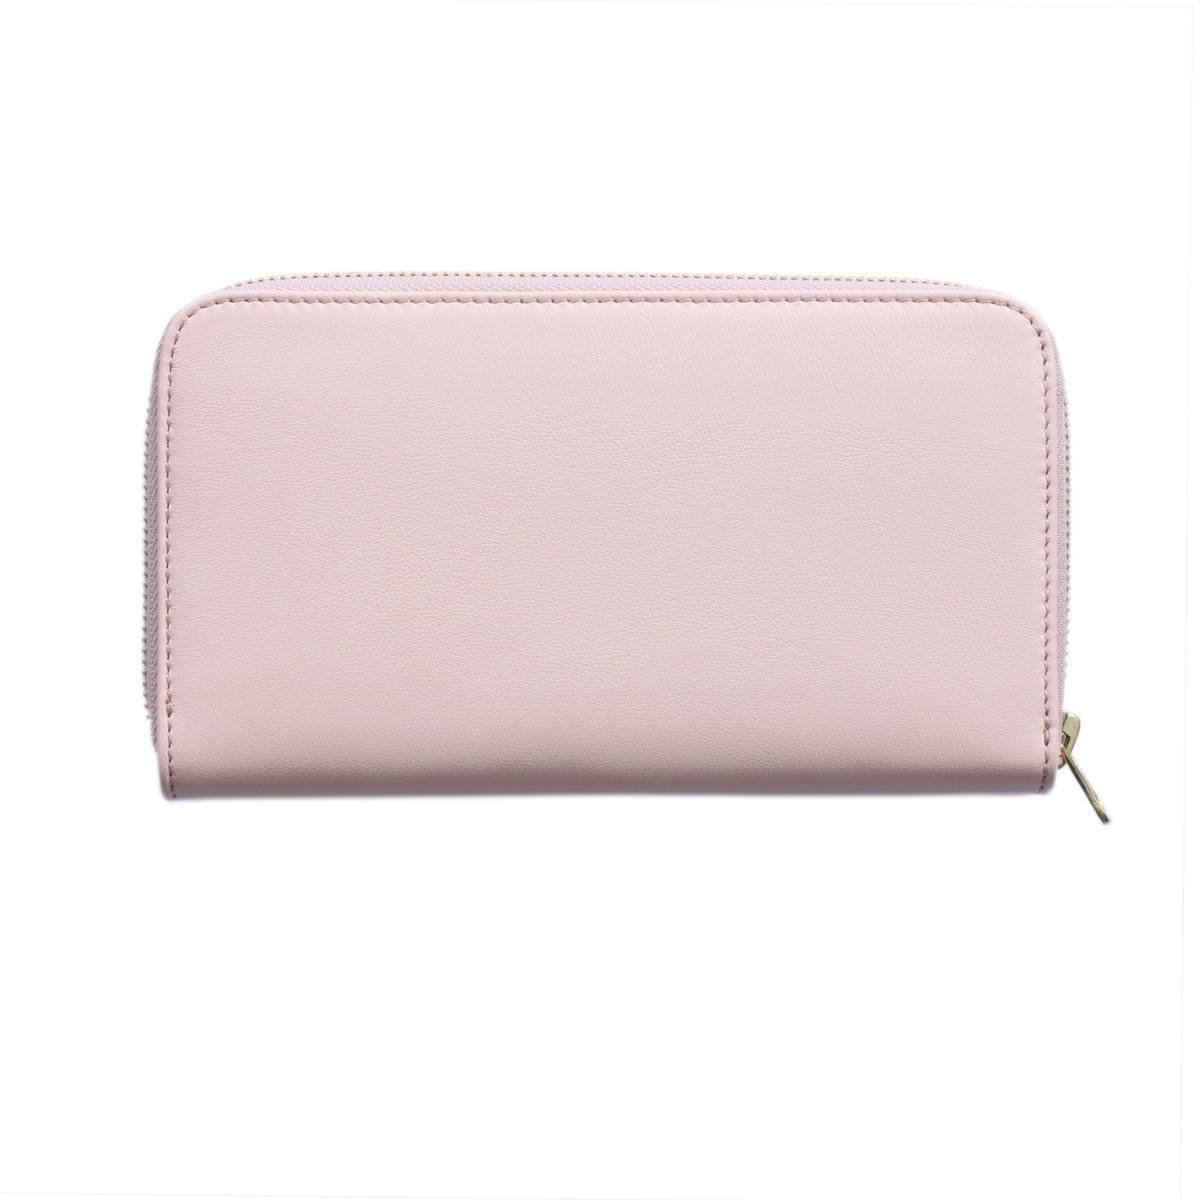 Raphael Rossetti Aletheia Leather Wallet Cement Pink Back